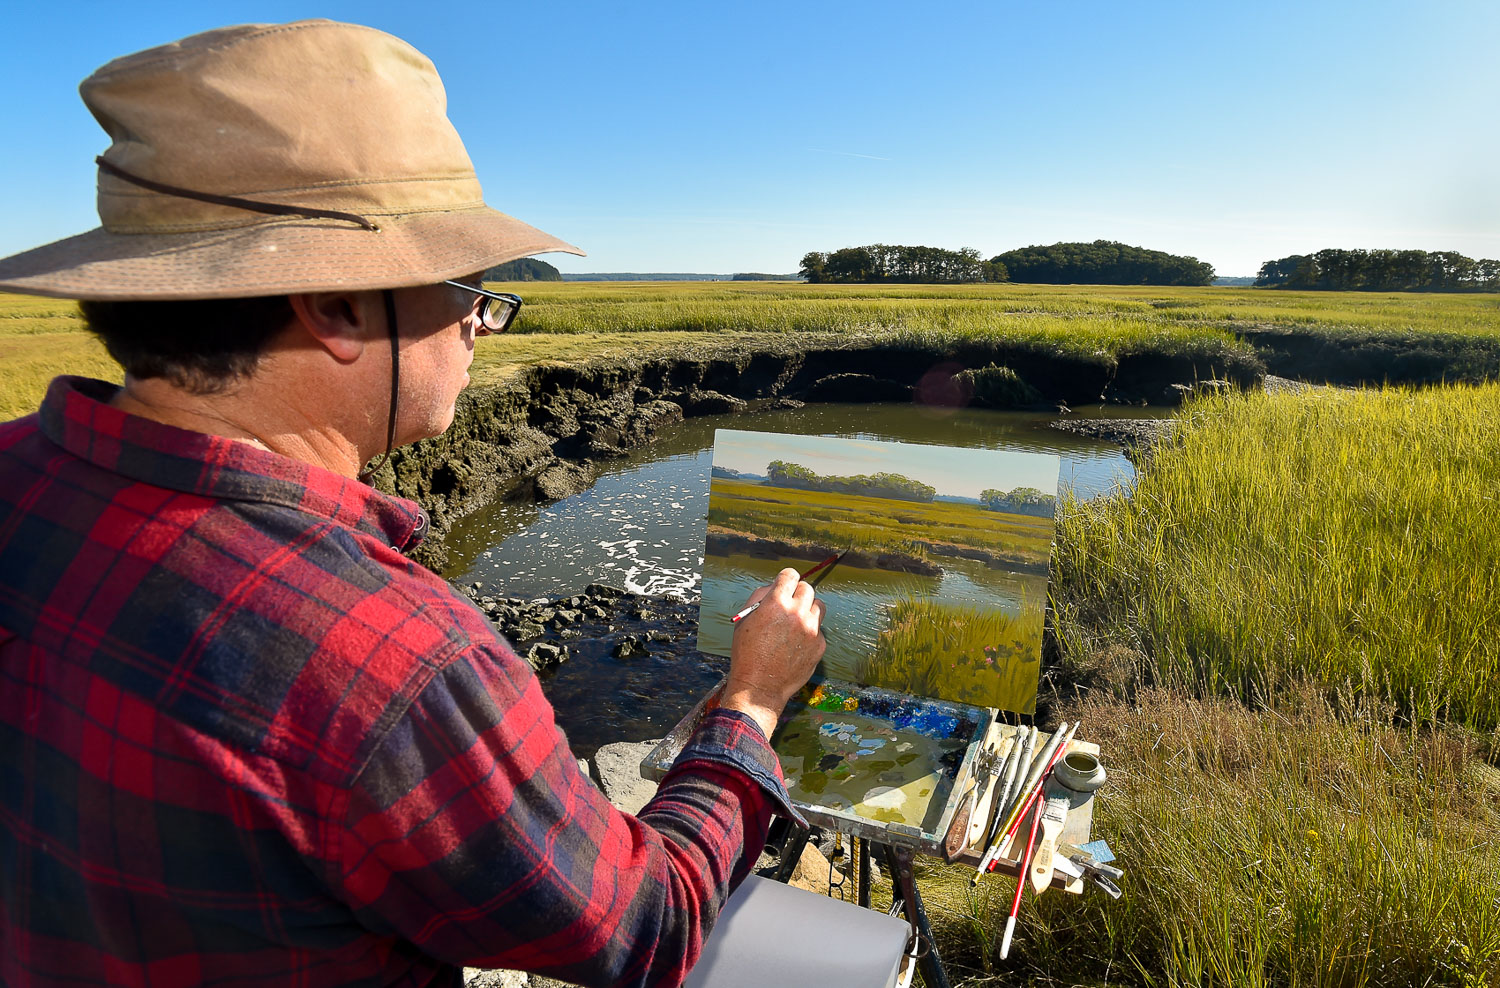 Nikon D4s, 1/400 @ f/8, ISO 200, 17-35mm  Professional artist Mark Shasha uses oil paints as he works on a painting looking over a marsh along Argilla Road in Ipswich, Wednesday, Oct. 4, 2017.